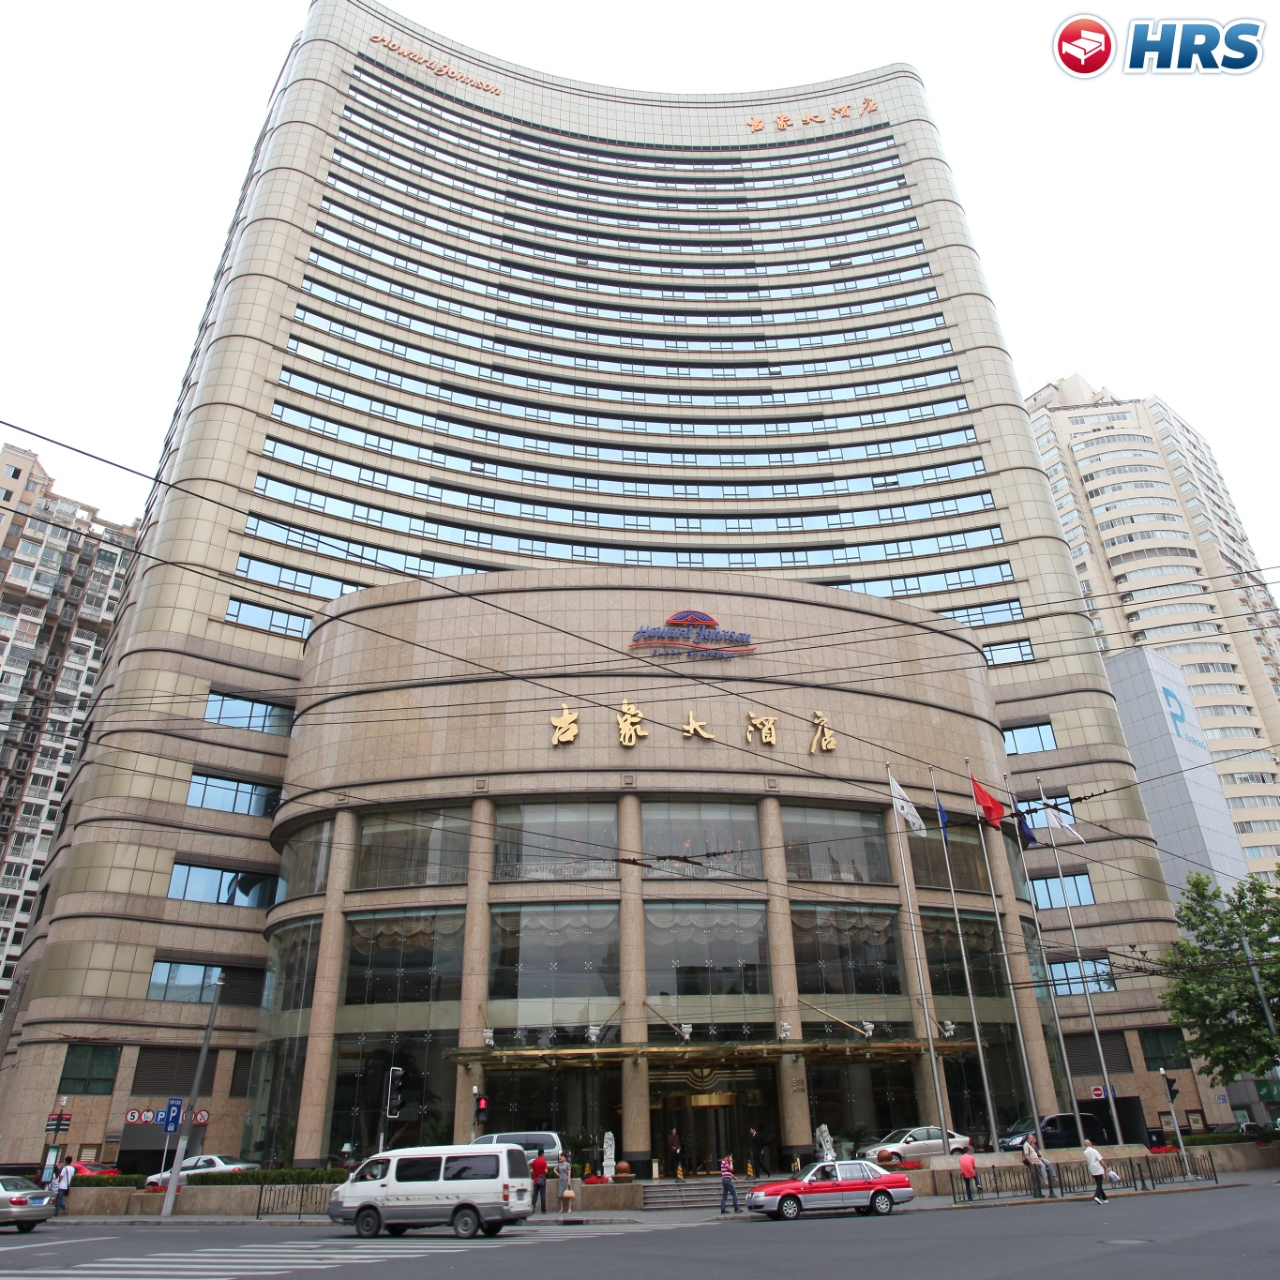 Guxiang Hotel Shanghai Former Howard Johnson Plaza Shanghai Shanghai Shanghai Municipality At Hrs With Free Services